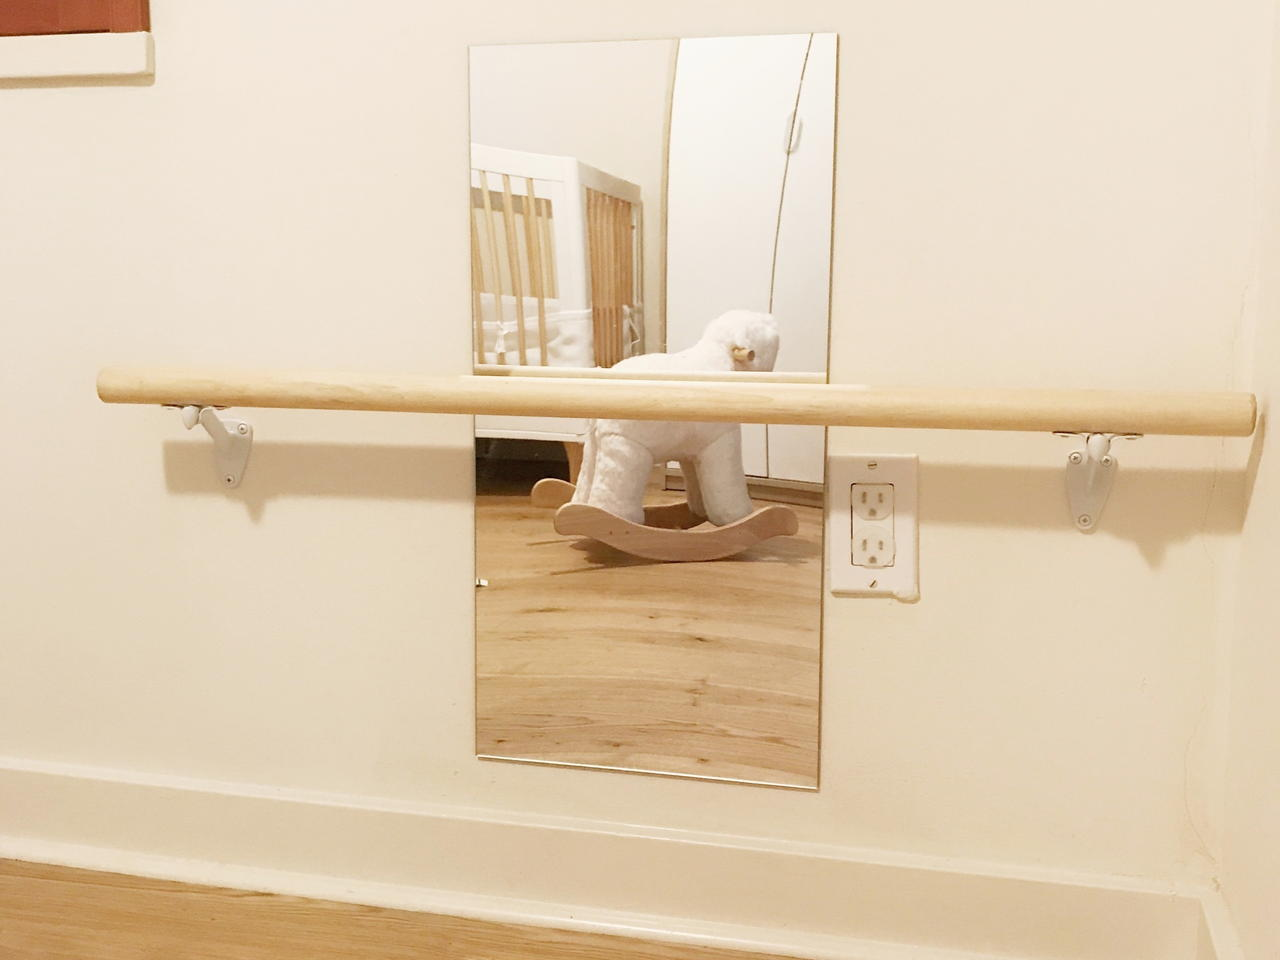 Montessori Pull-up Bar - Video project from Silvia